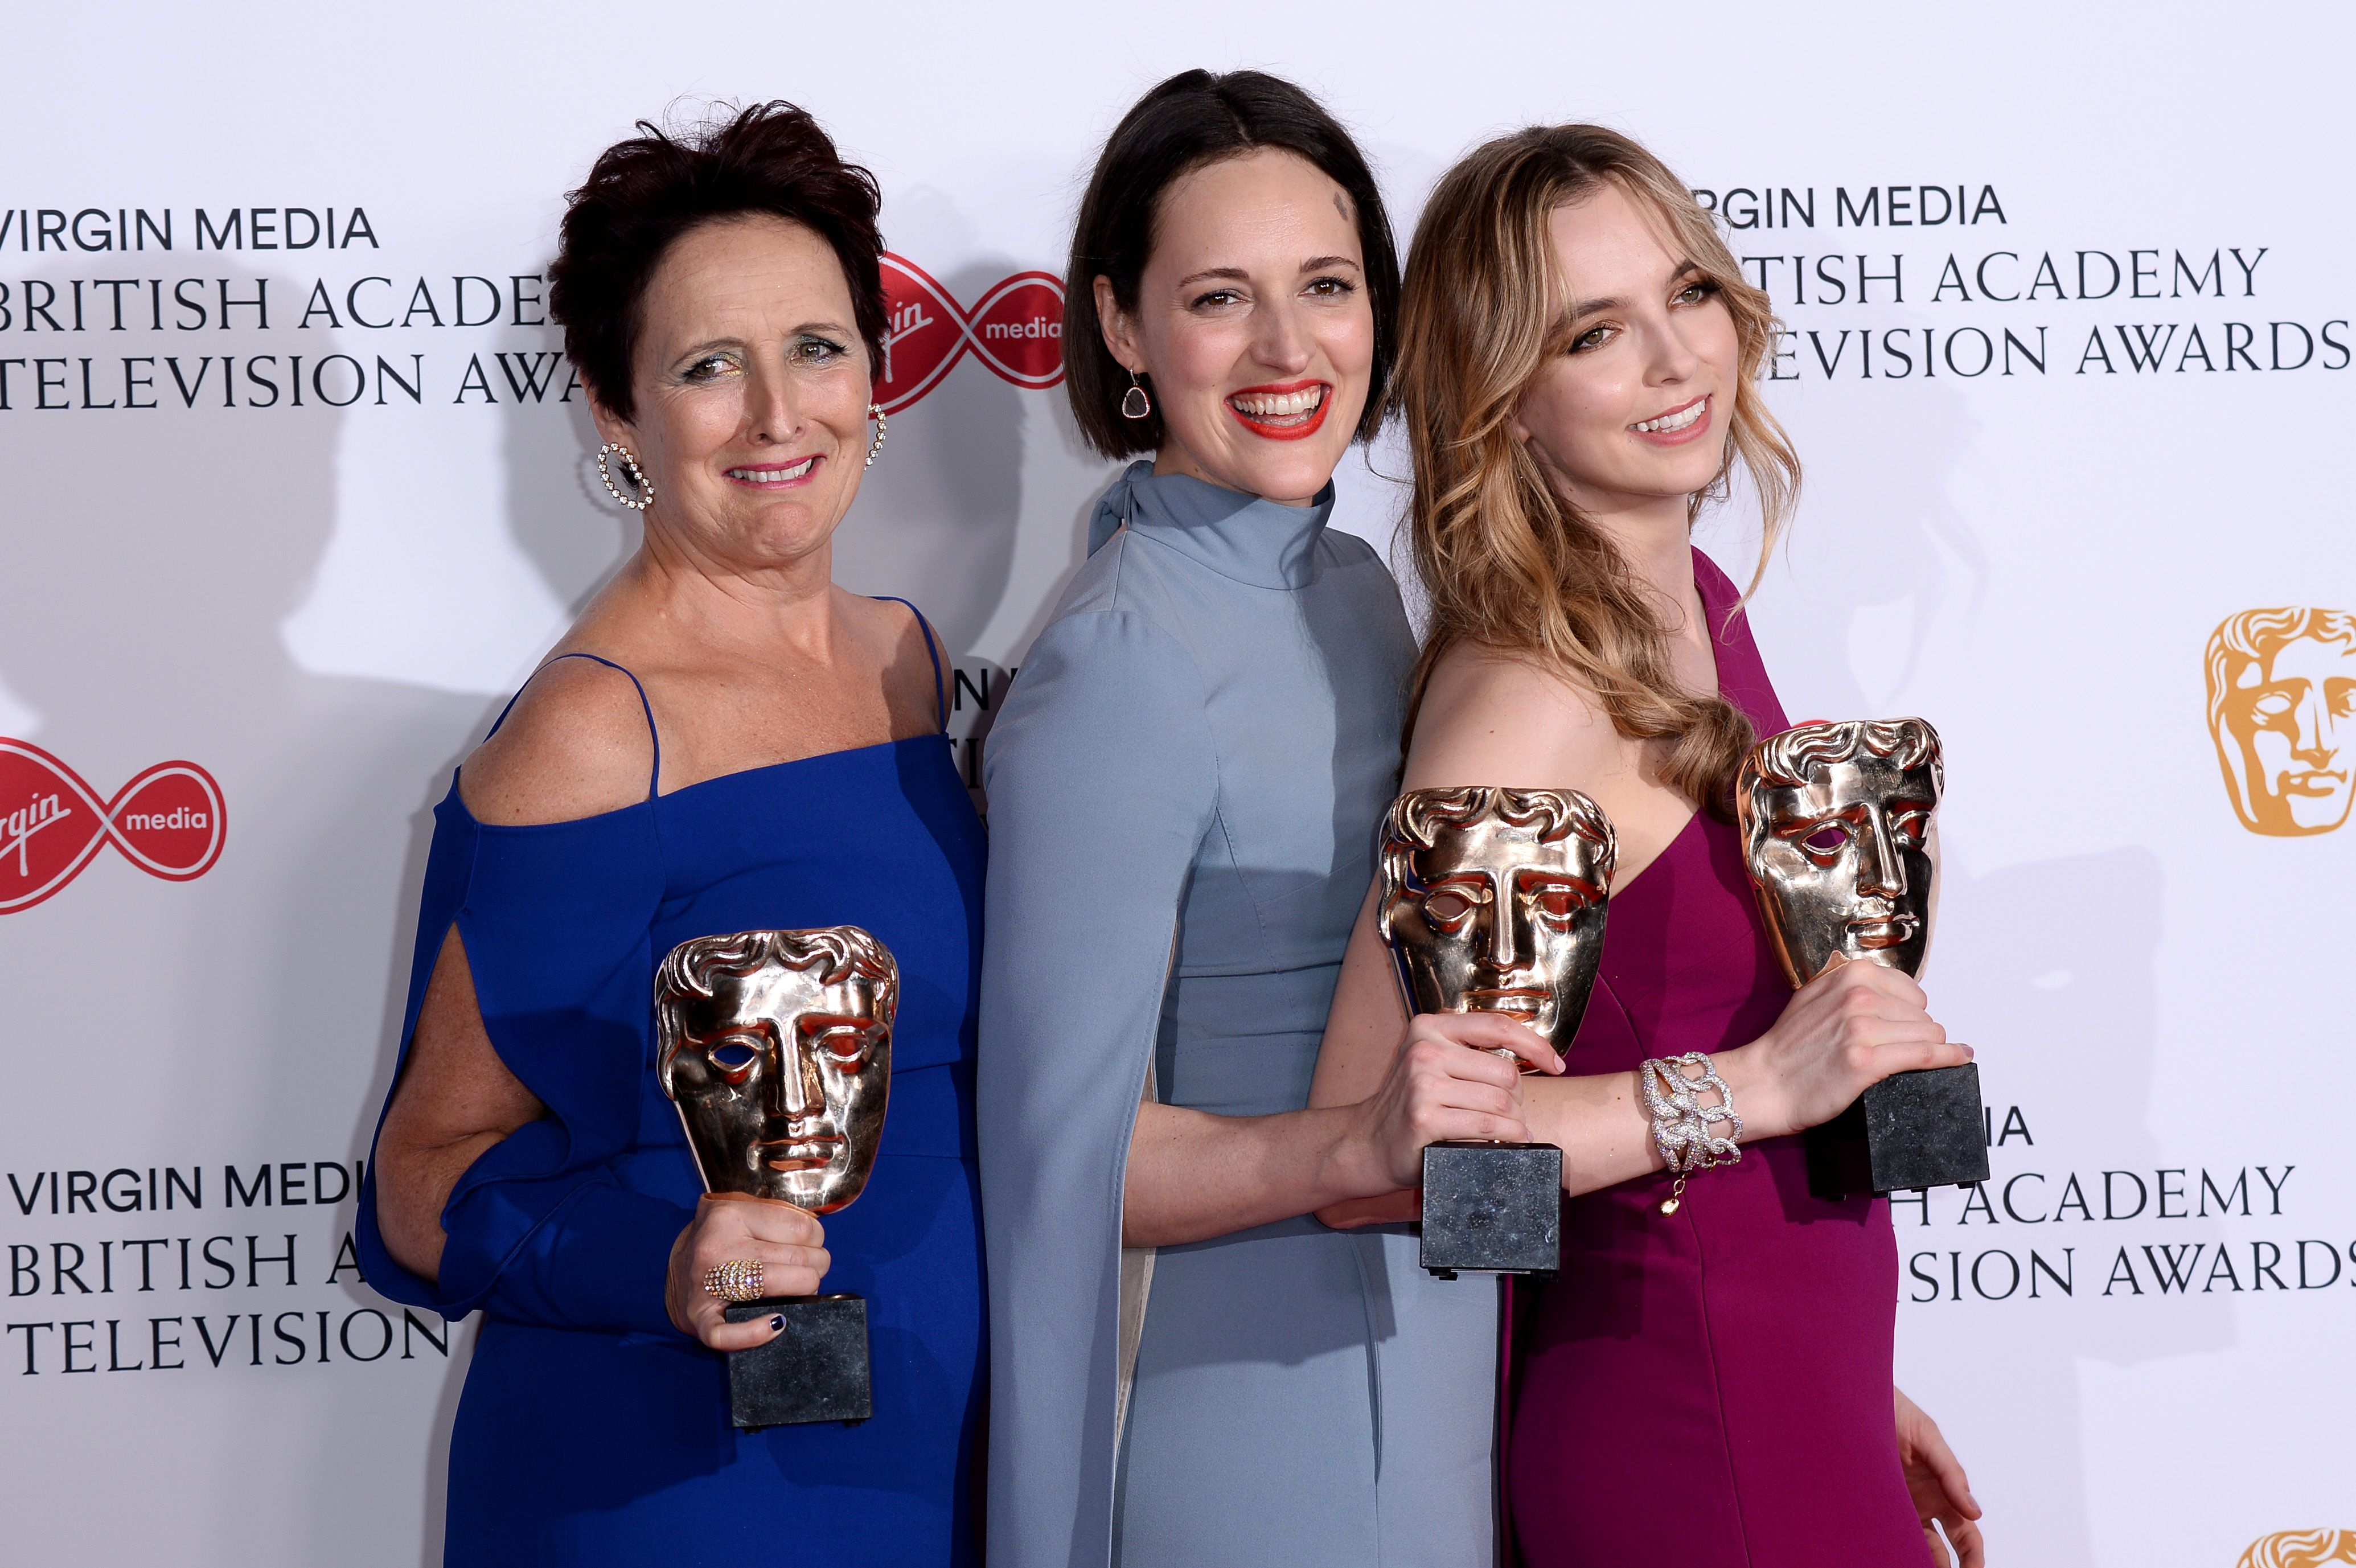 Killing Eve team Fiona Shaw, Phoebe Waller-Bridge and Jodie Comer at the Virgin Media British Academy Television Awards in 2019